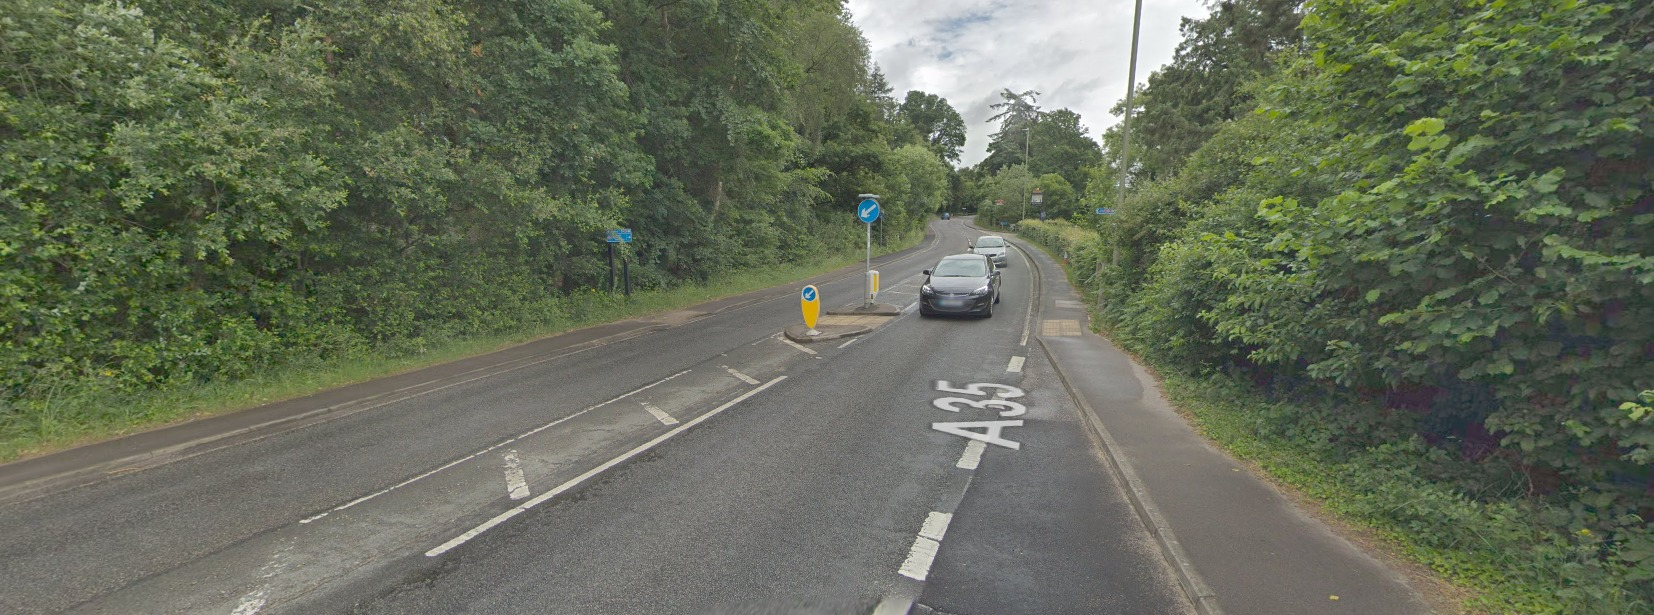 Google Street View of Lyndhurst Road, Ashurst